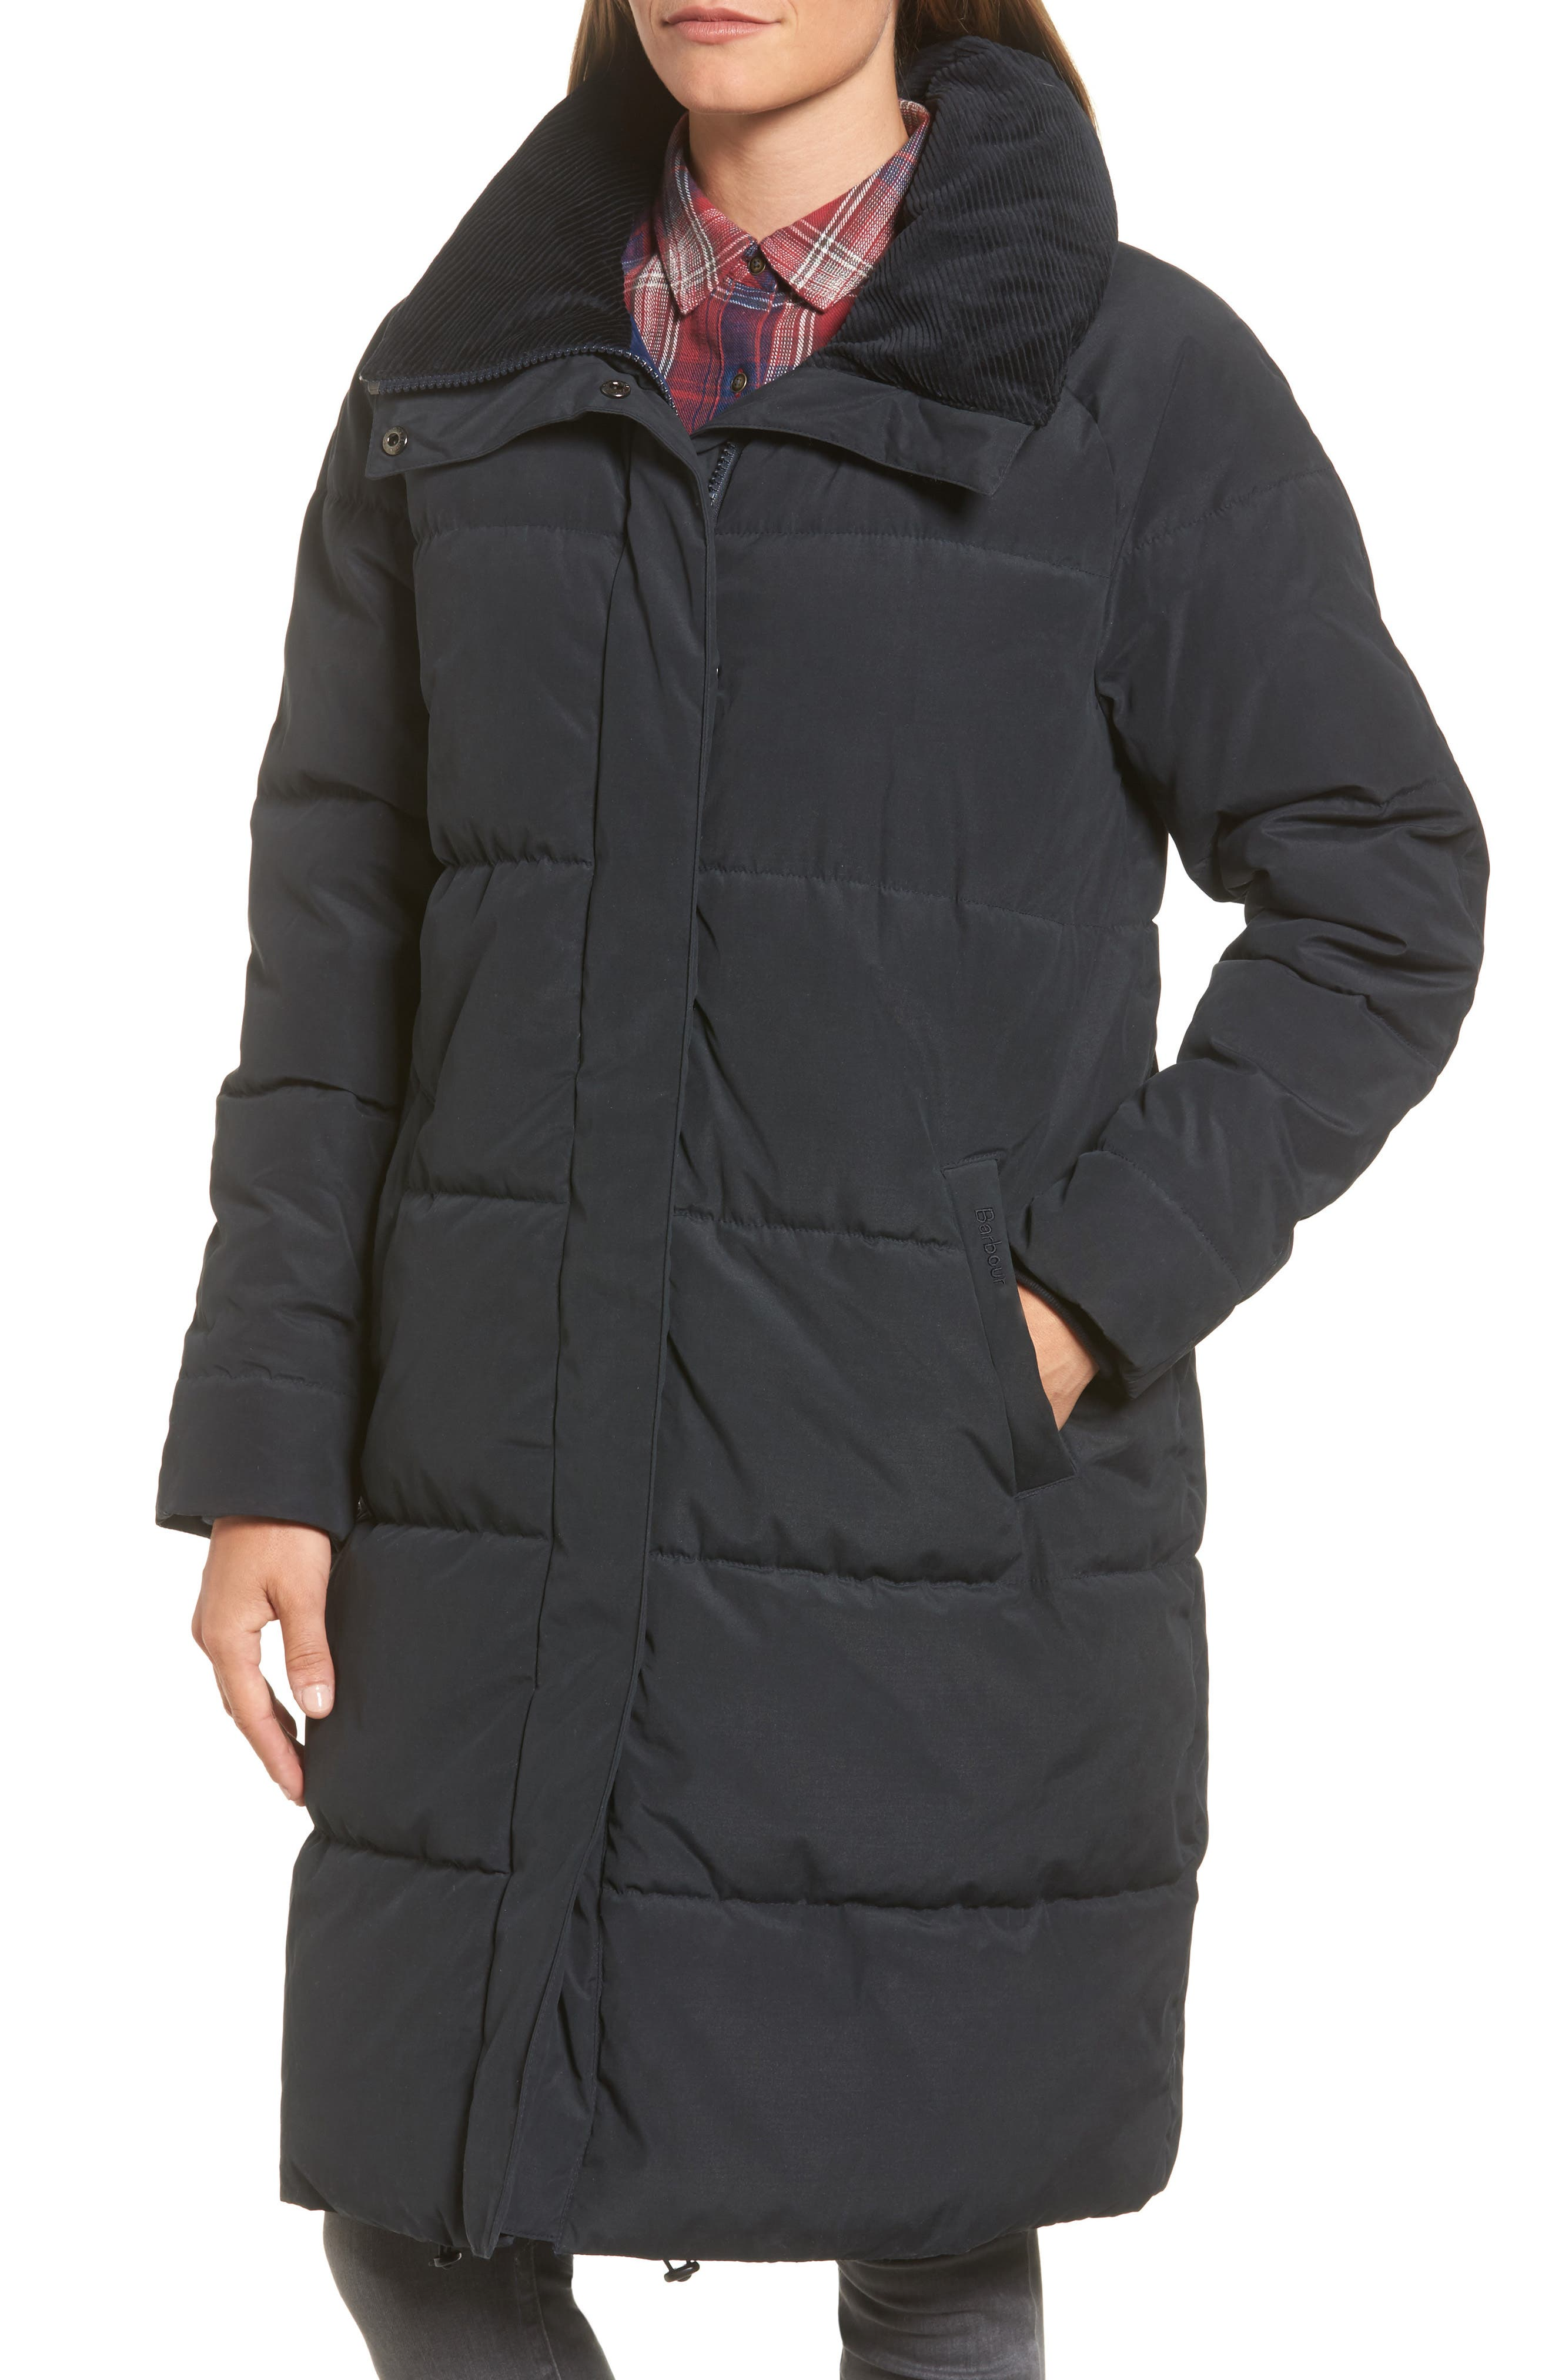 Leck Water Resistant Baffle Quilted Coat,                             Alternate thumbnail 4, color,                             410